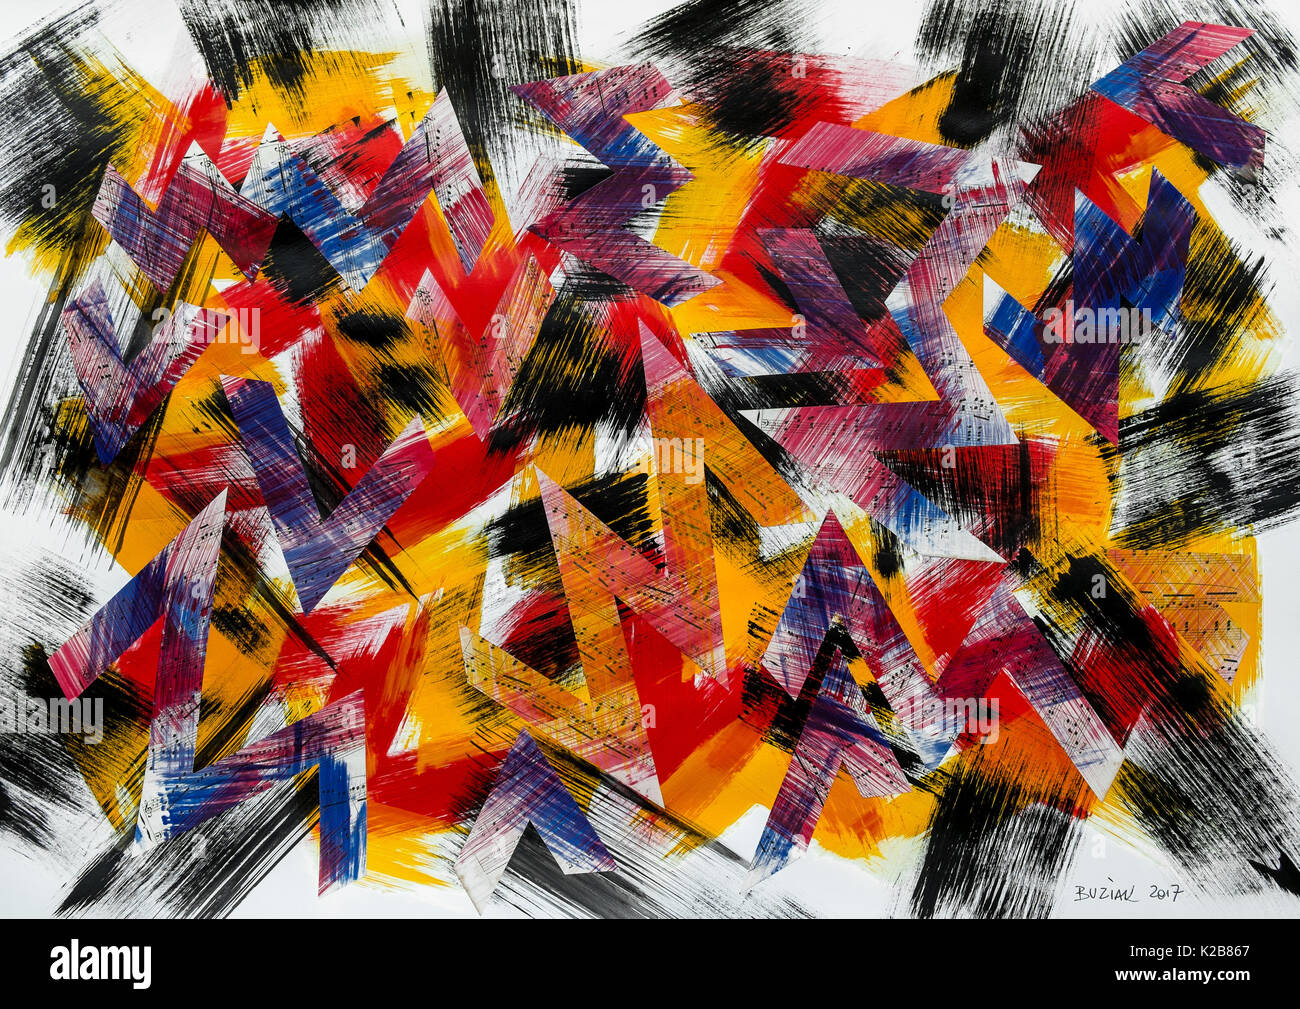 'Pop Camouflage' - abstract artwork by Ed Buziak. - Stock Image